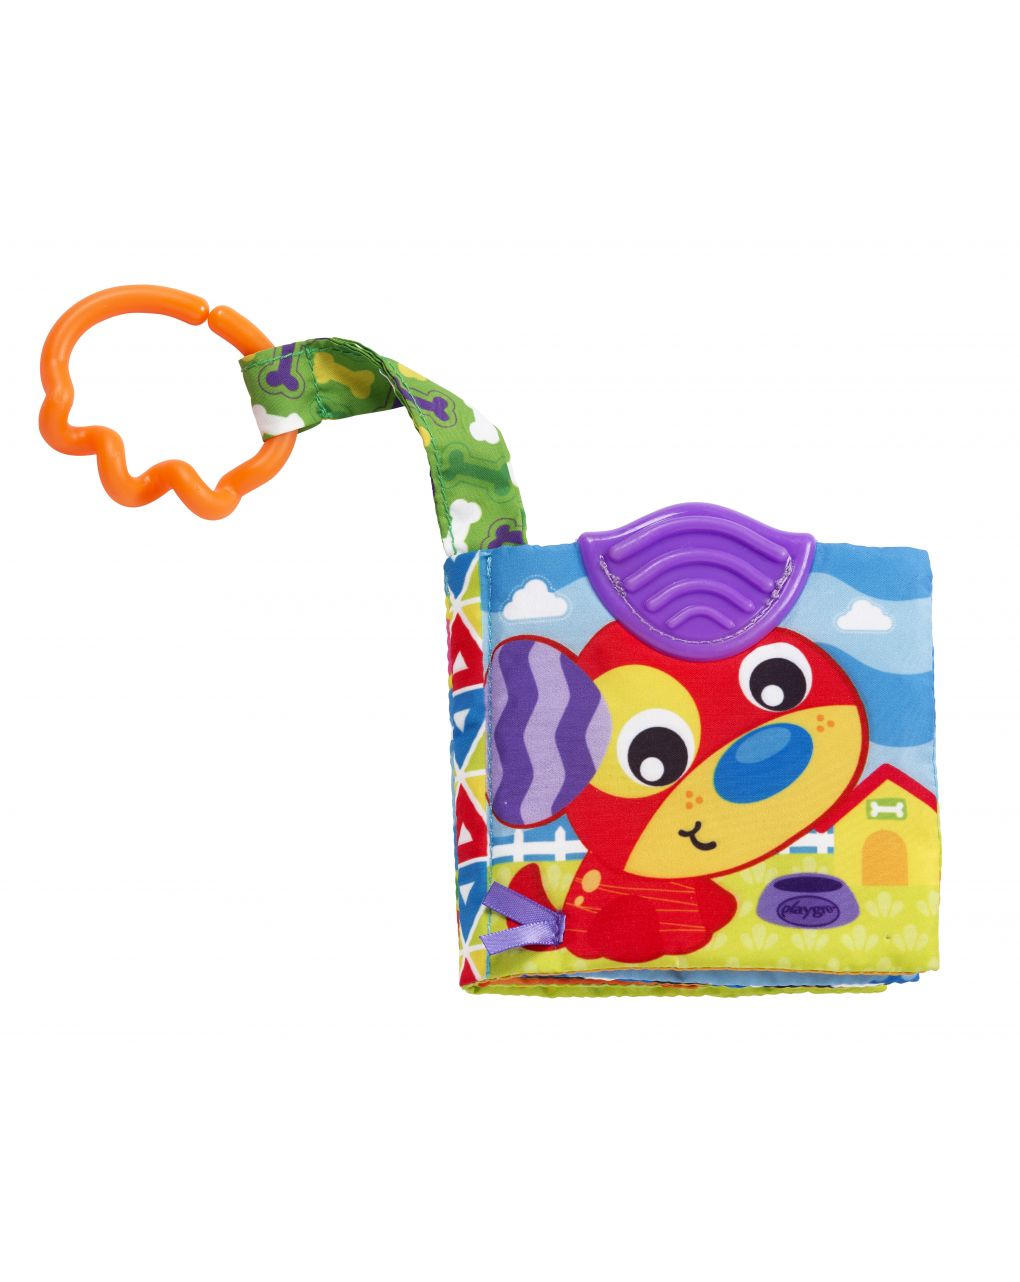 Playgro - a day at the farm teether book - Playgro